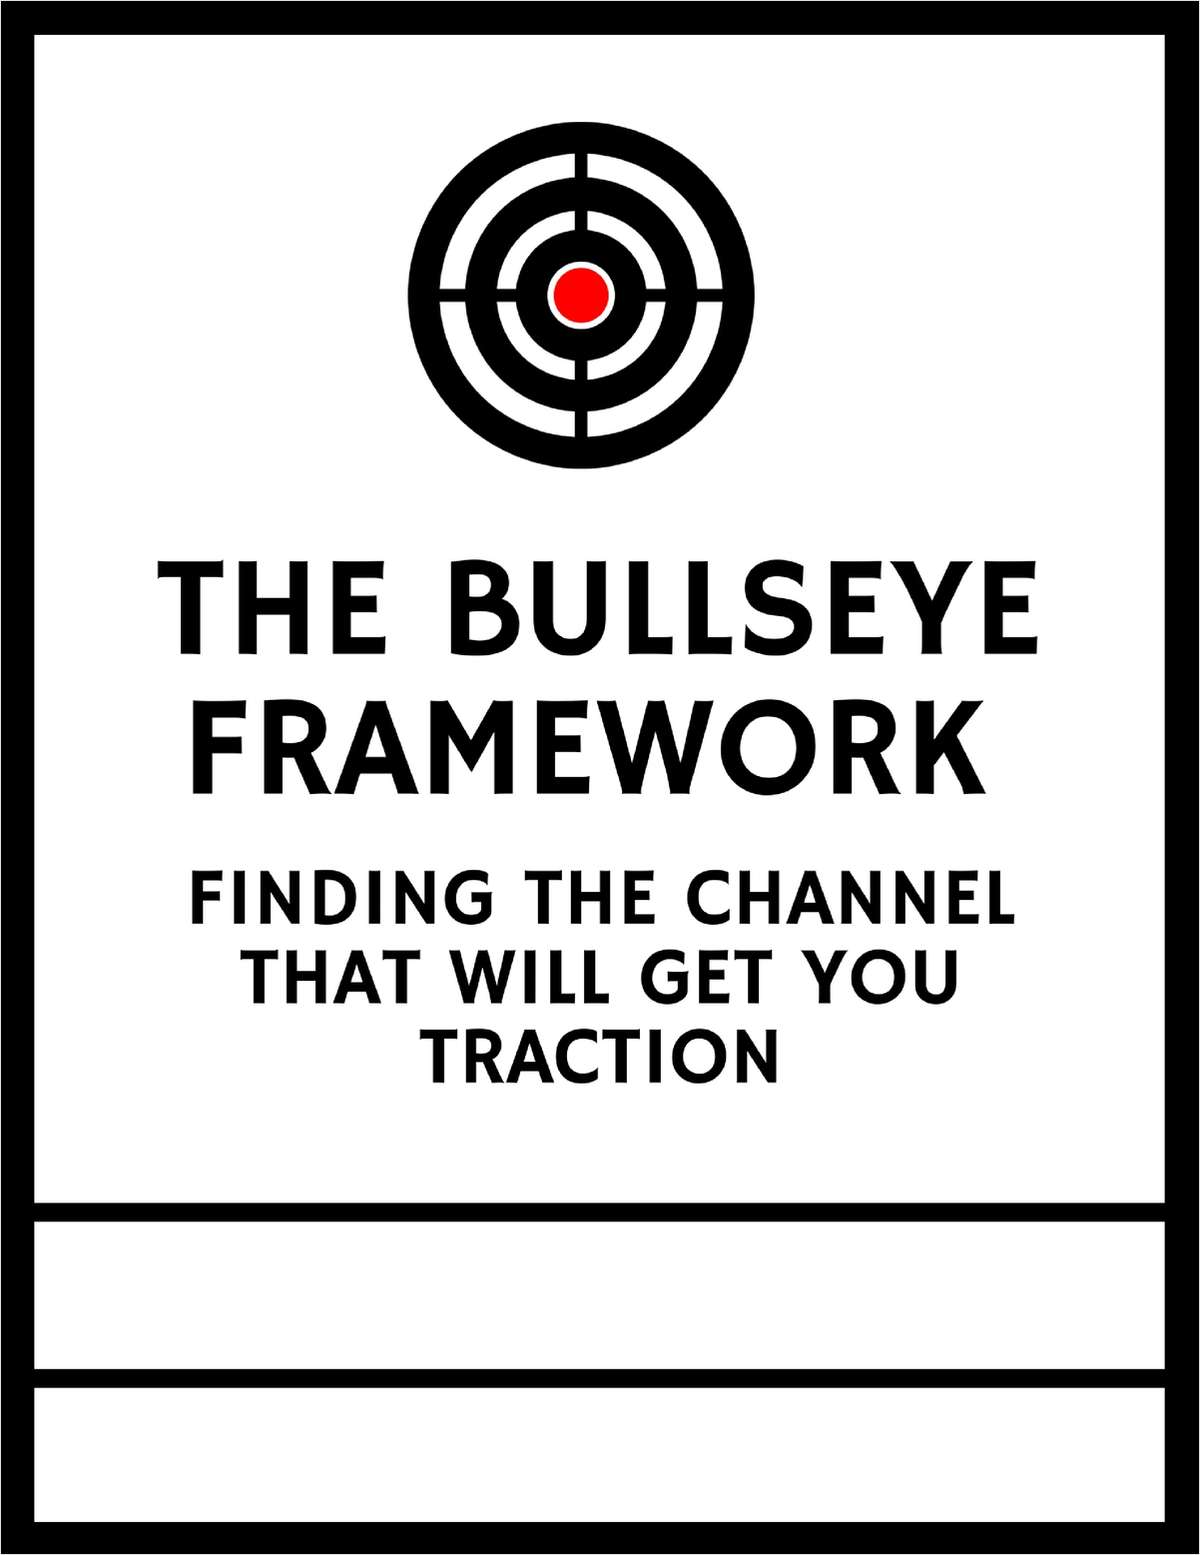 The Bullseye Framework: Finding the Channel That Will Get You Traction